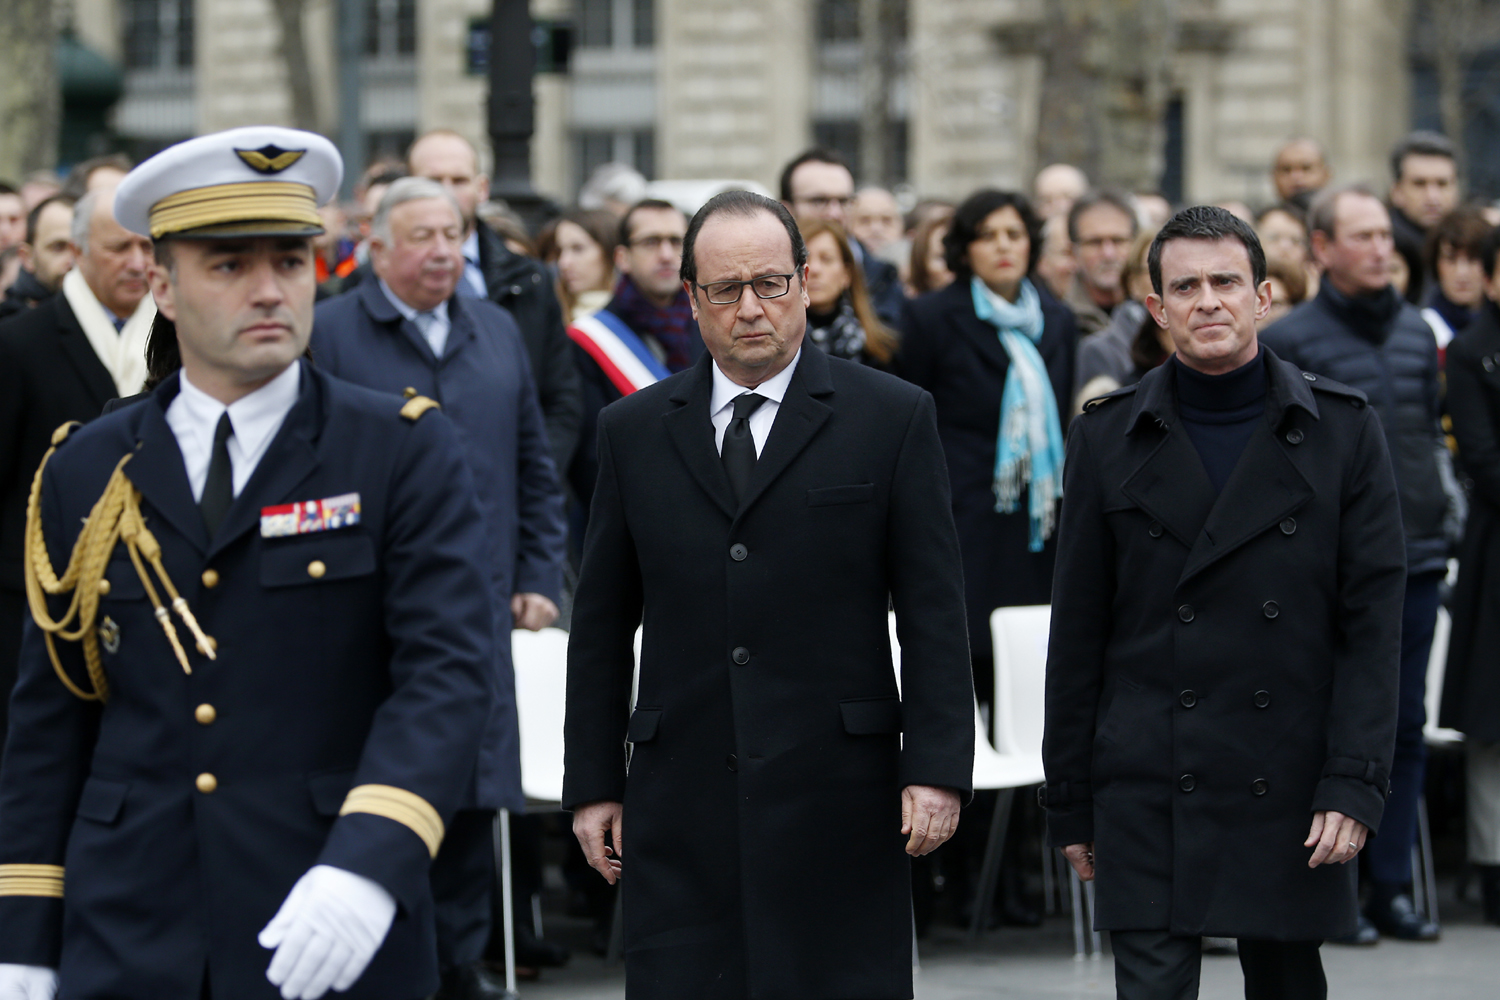 French President Francois Hollande (C) and French Prime Minister Manuel Valls (R) attend a remembrance rally at Place de la Republique (Republic square) on January 10, 2016 to mark a year since 1.6 million people thronged the French capital in a show of unity after attacks on the Charlie Hebdo newspaper and a Jewish supermarket. Just as it was last year, the vast Place de la Republique will be the focus of the gathering as people reiterate their support for freedom of expression and remember the other victims of what would become a year of jihadist outrages in France, culminating in the November 13 coordinated shootings and suicide bombings that killed 130 people and were claimed by the Islamic State (IS) group. / AFP / POOL / YOAN VALAT